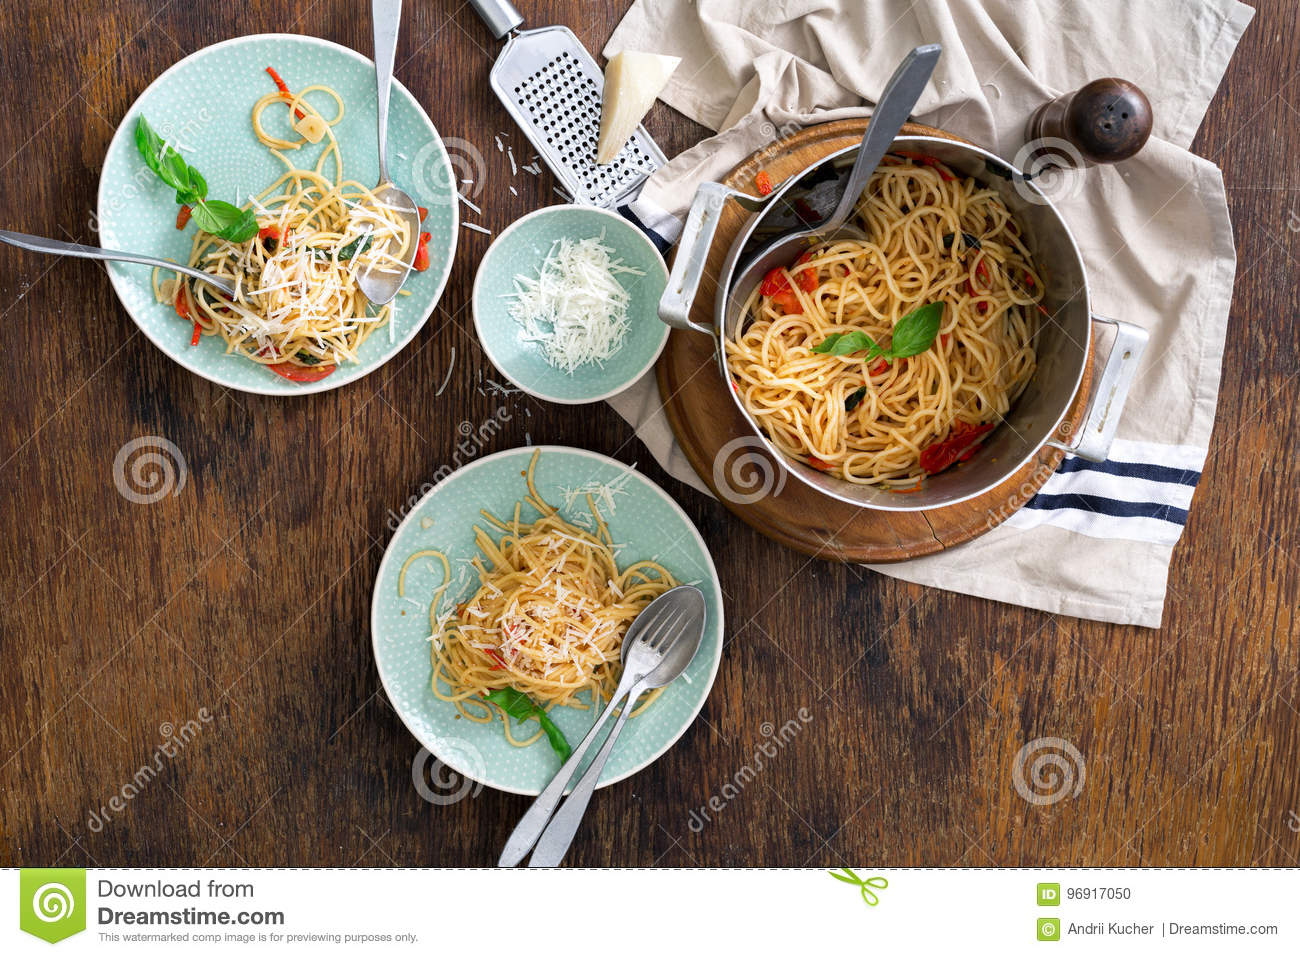 Classic Italian pasta with tomatoes on a wooden table